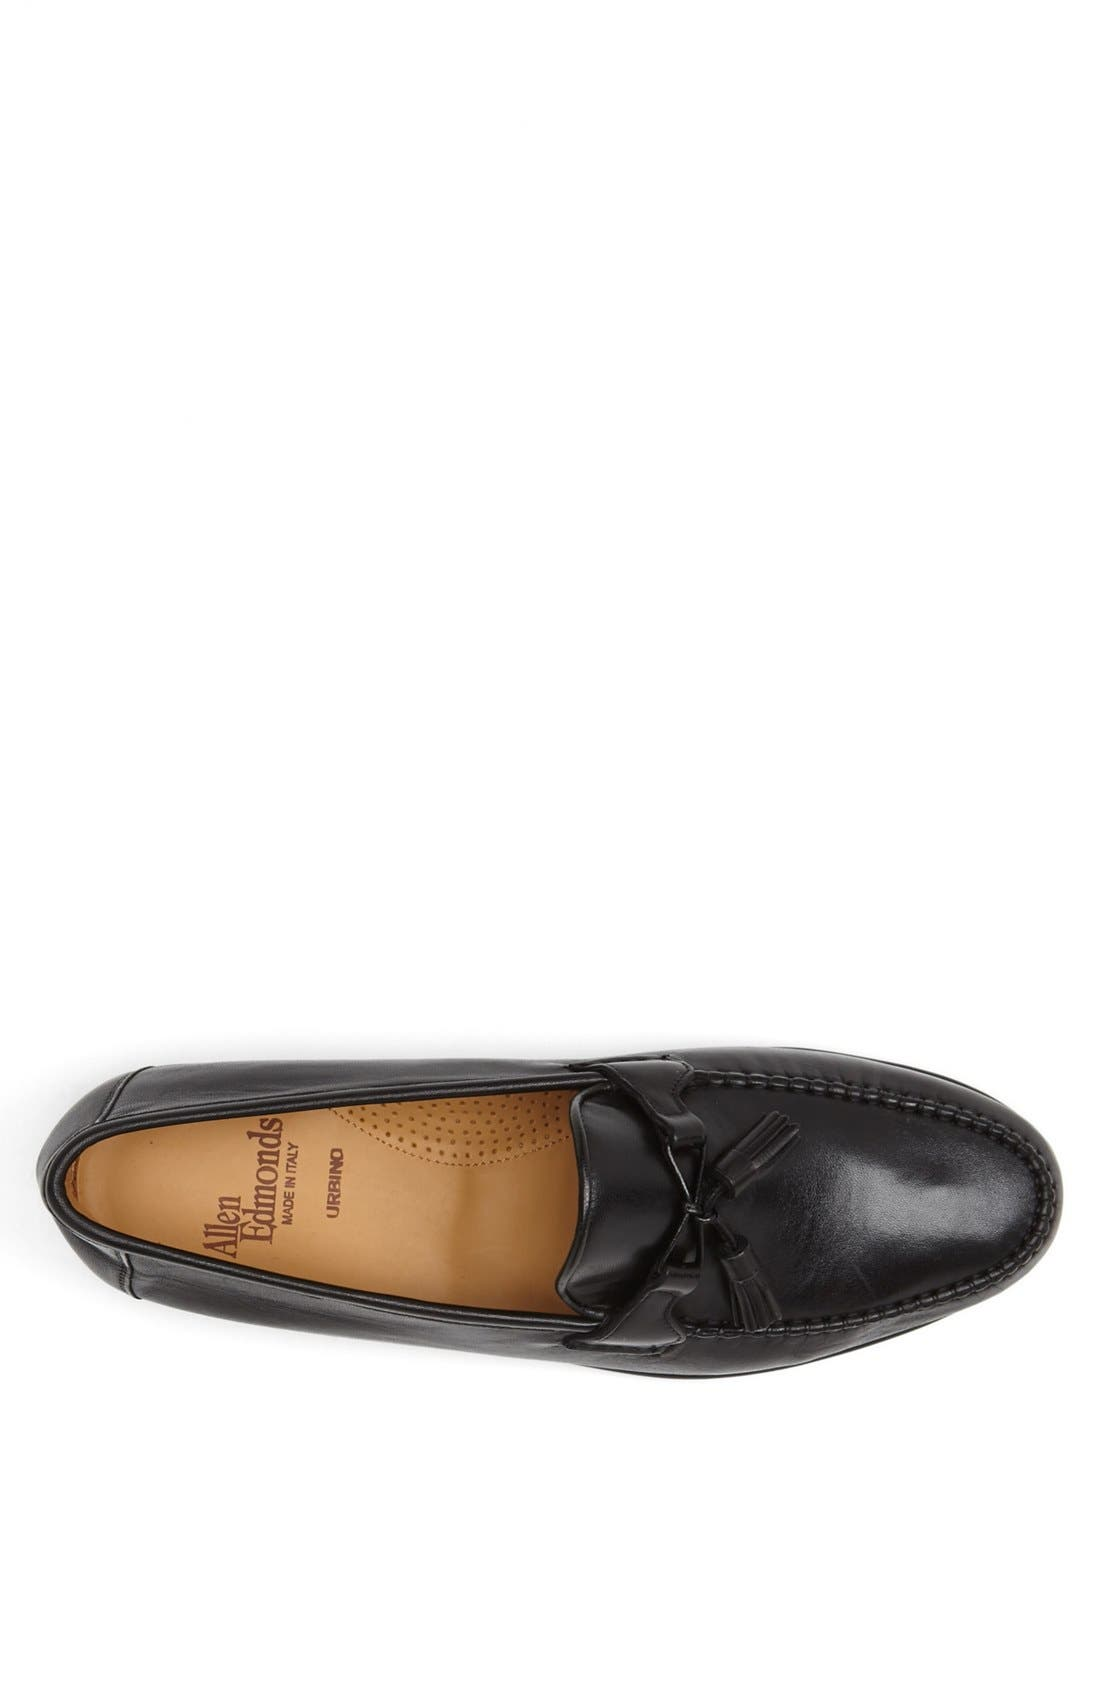 'Urbino' Tassel Loafer,                             Alternate thumbnail 3, color,                             Black